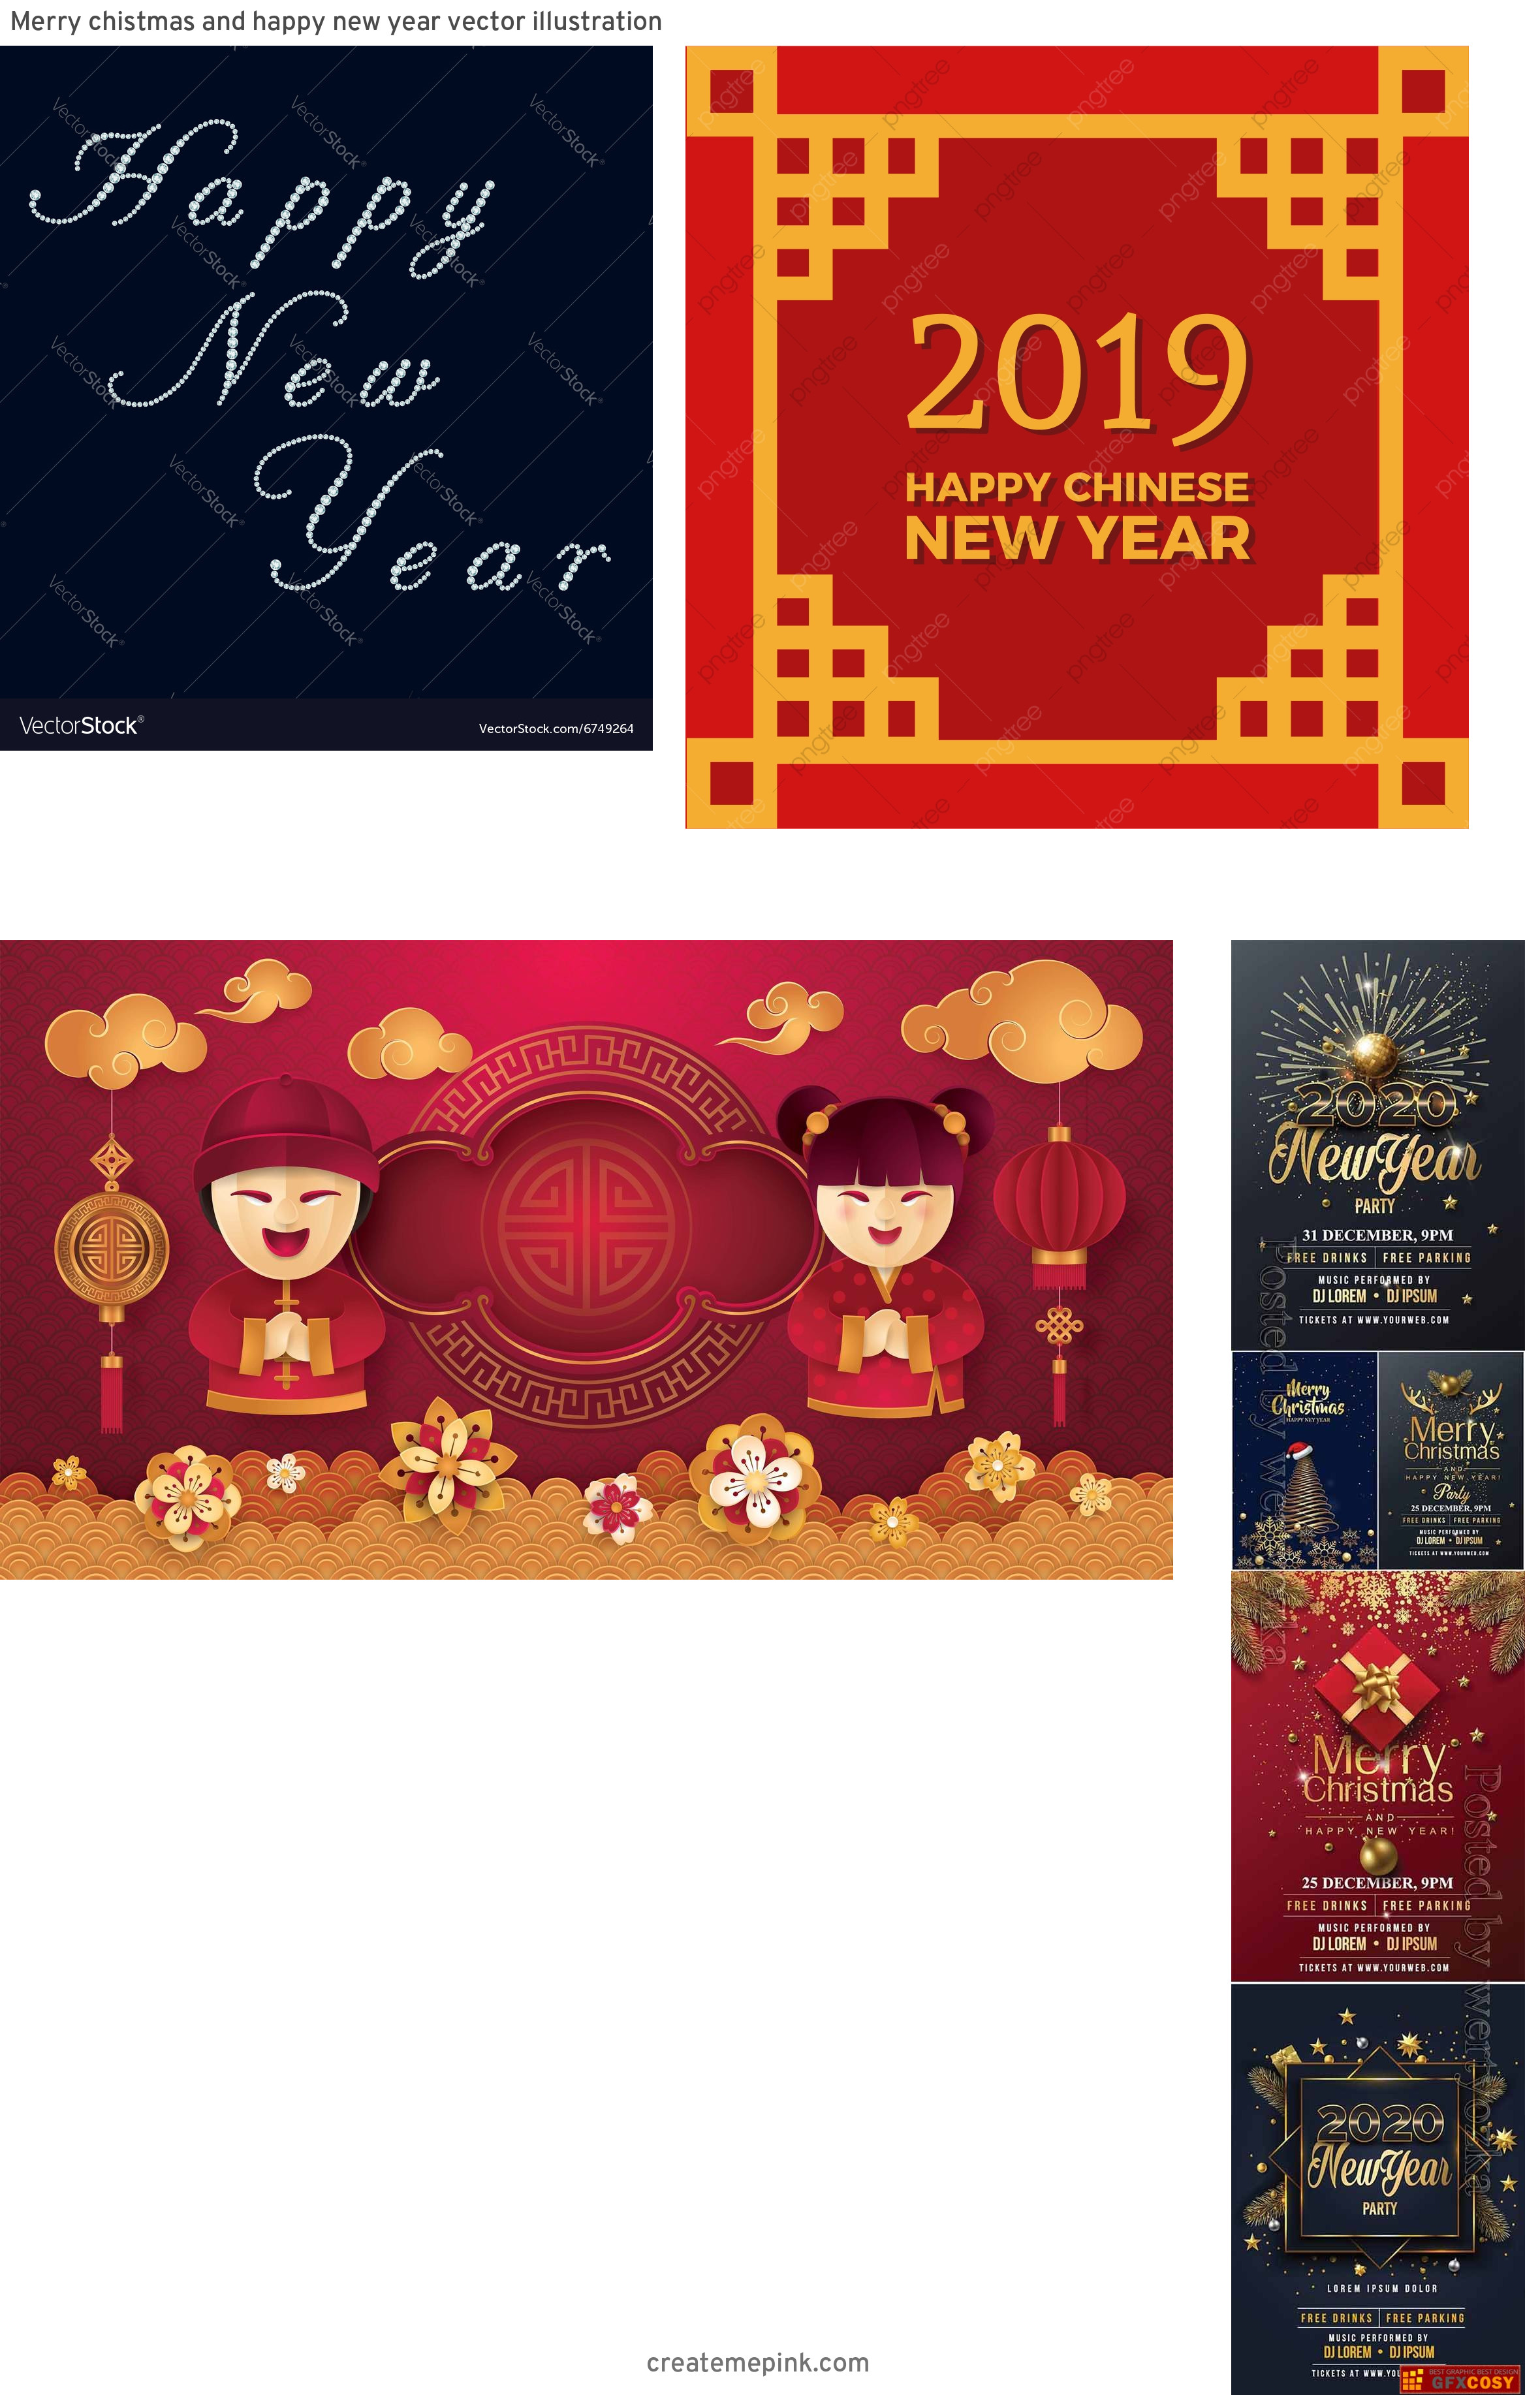 Free New Year Vector: Merry Chistmas And Happy New Year Vector Illustration